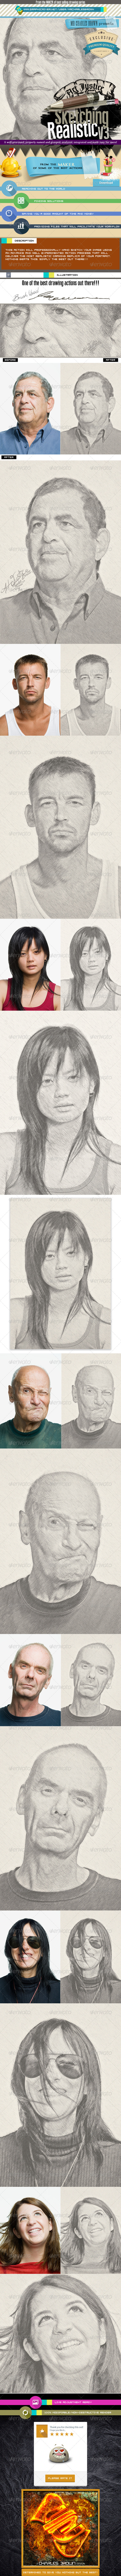 GraphicRiver Art Justice Realistic Sketching Vol 3 8514087